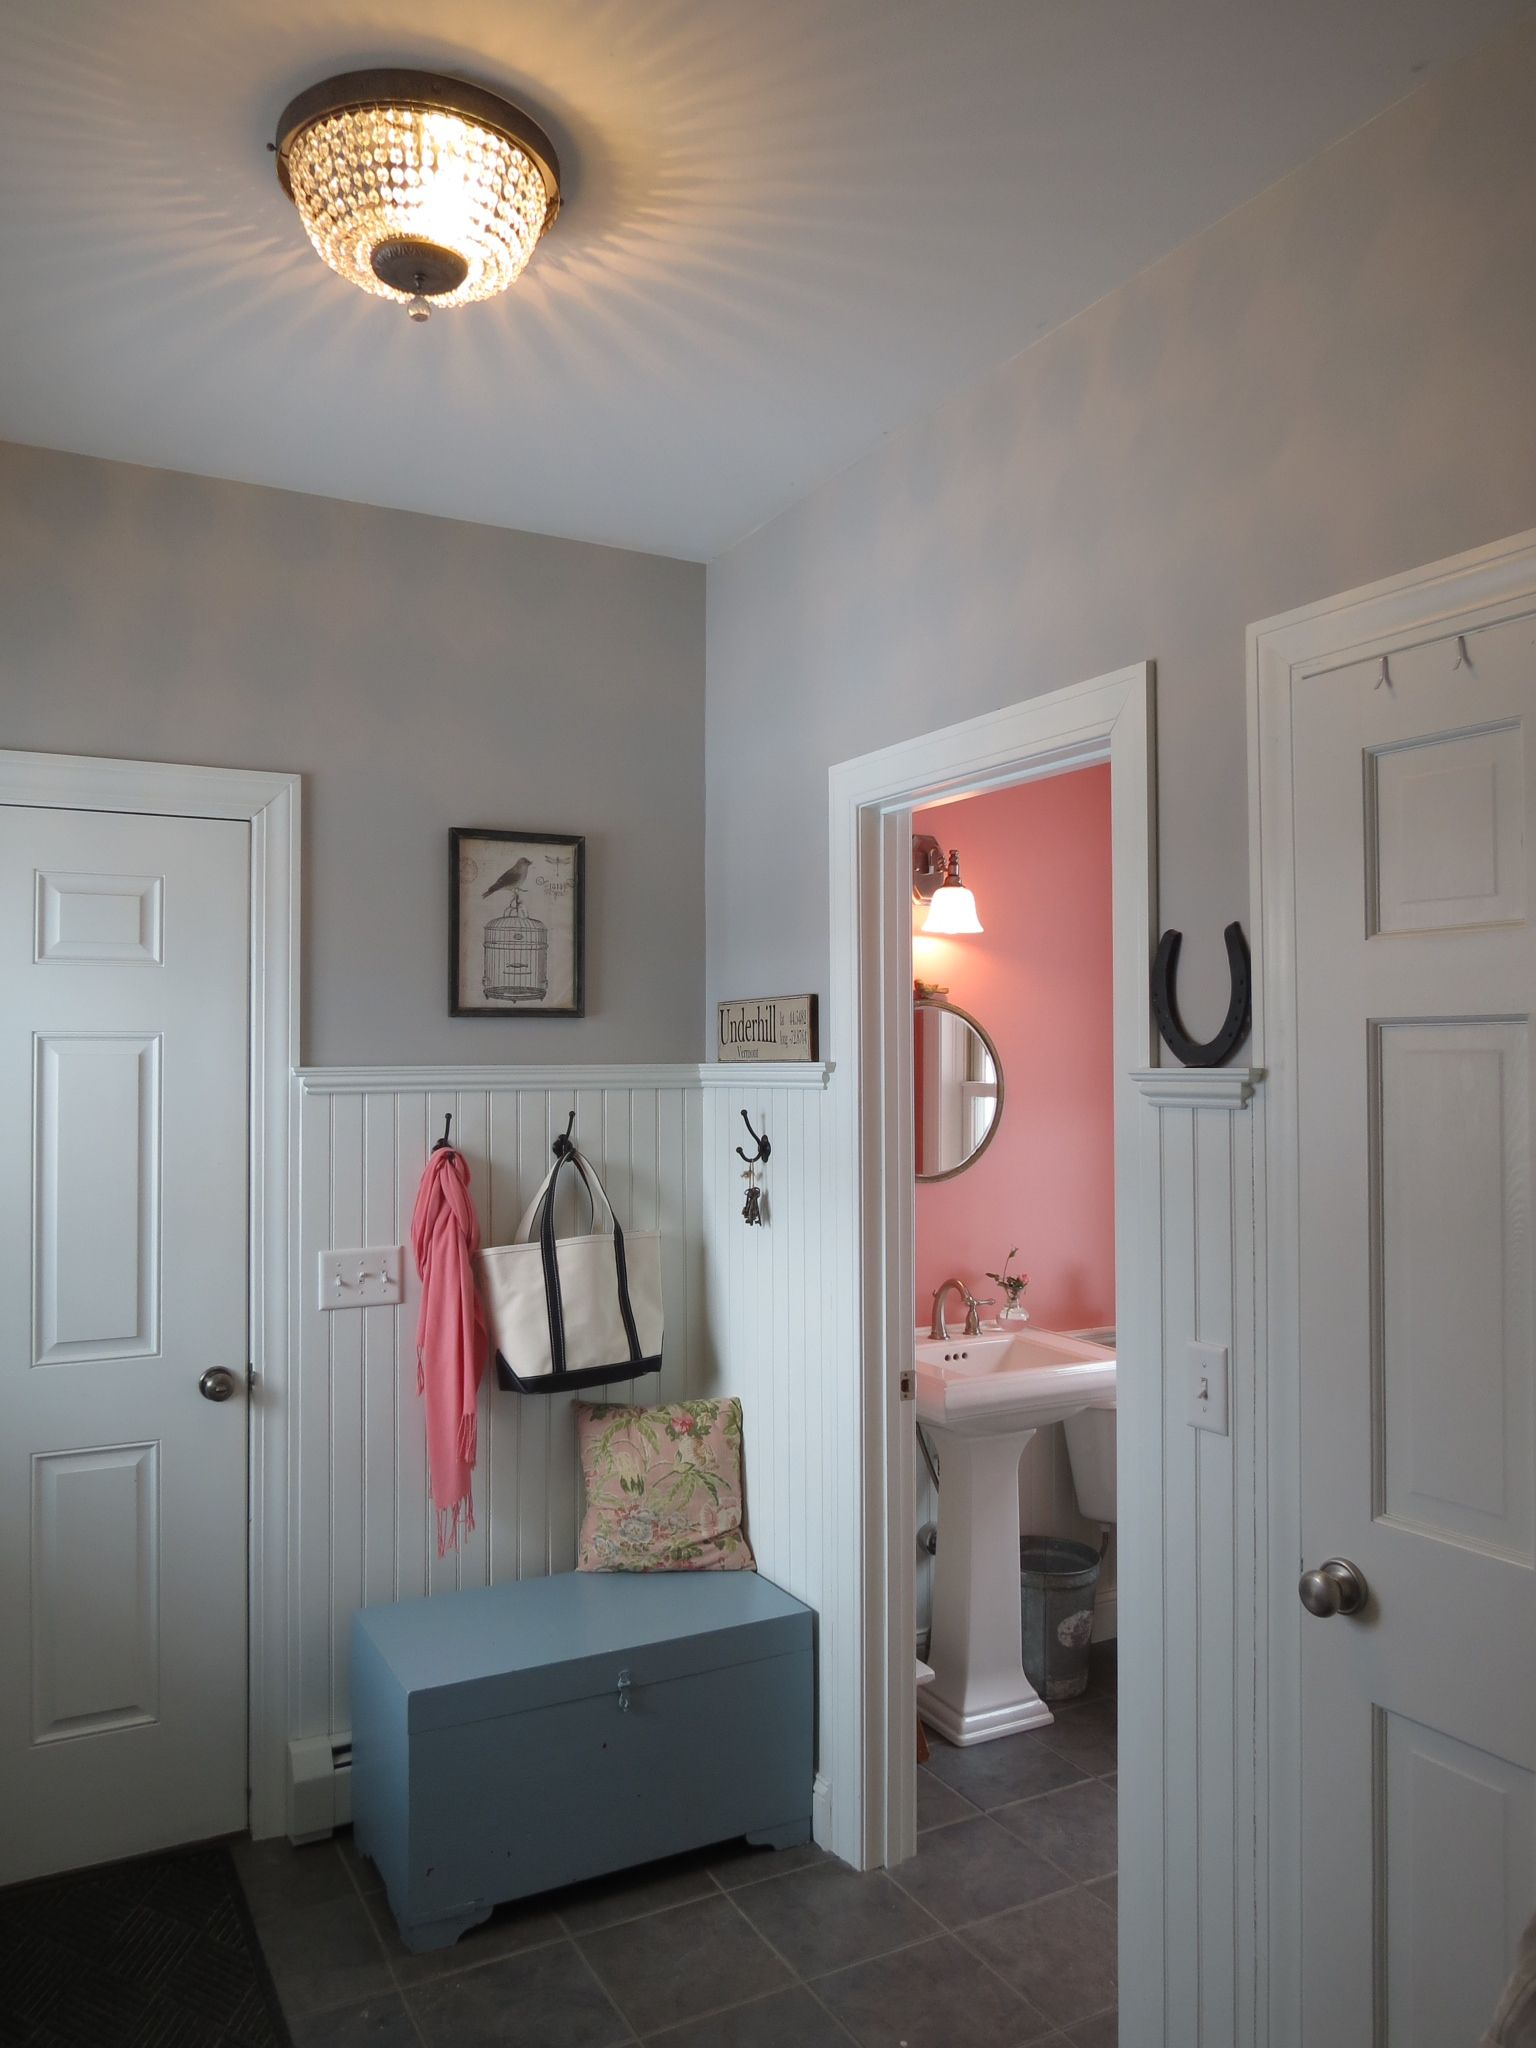 New Mudroom And Bath Colors Smoke Embers And Cool Lava